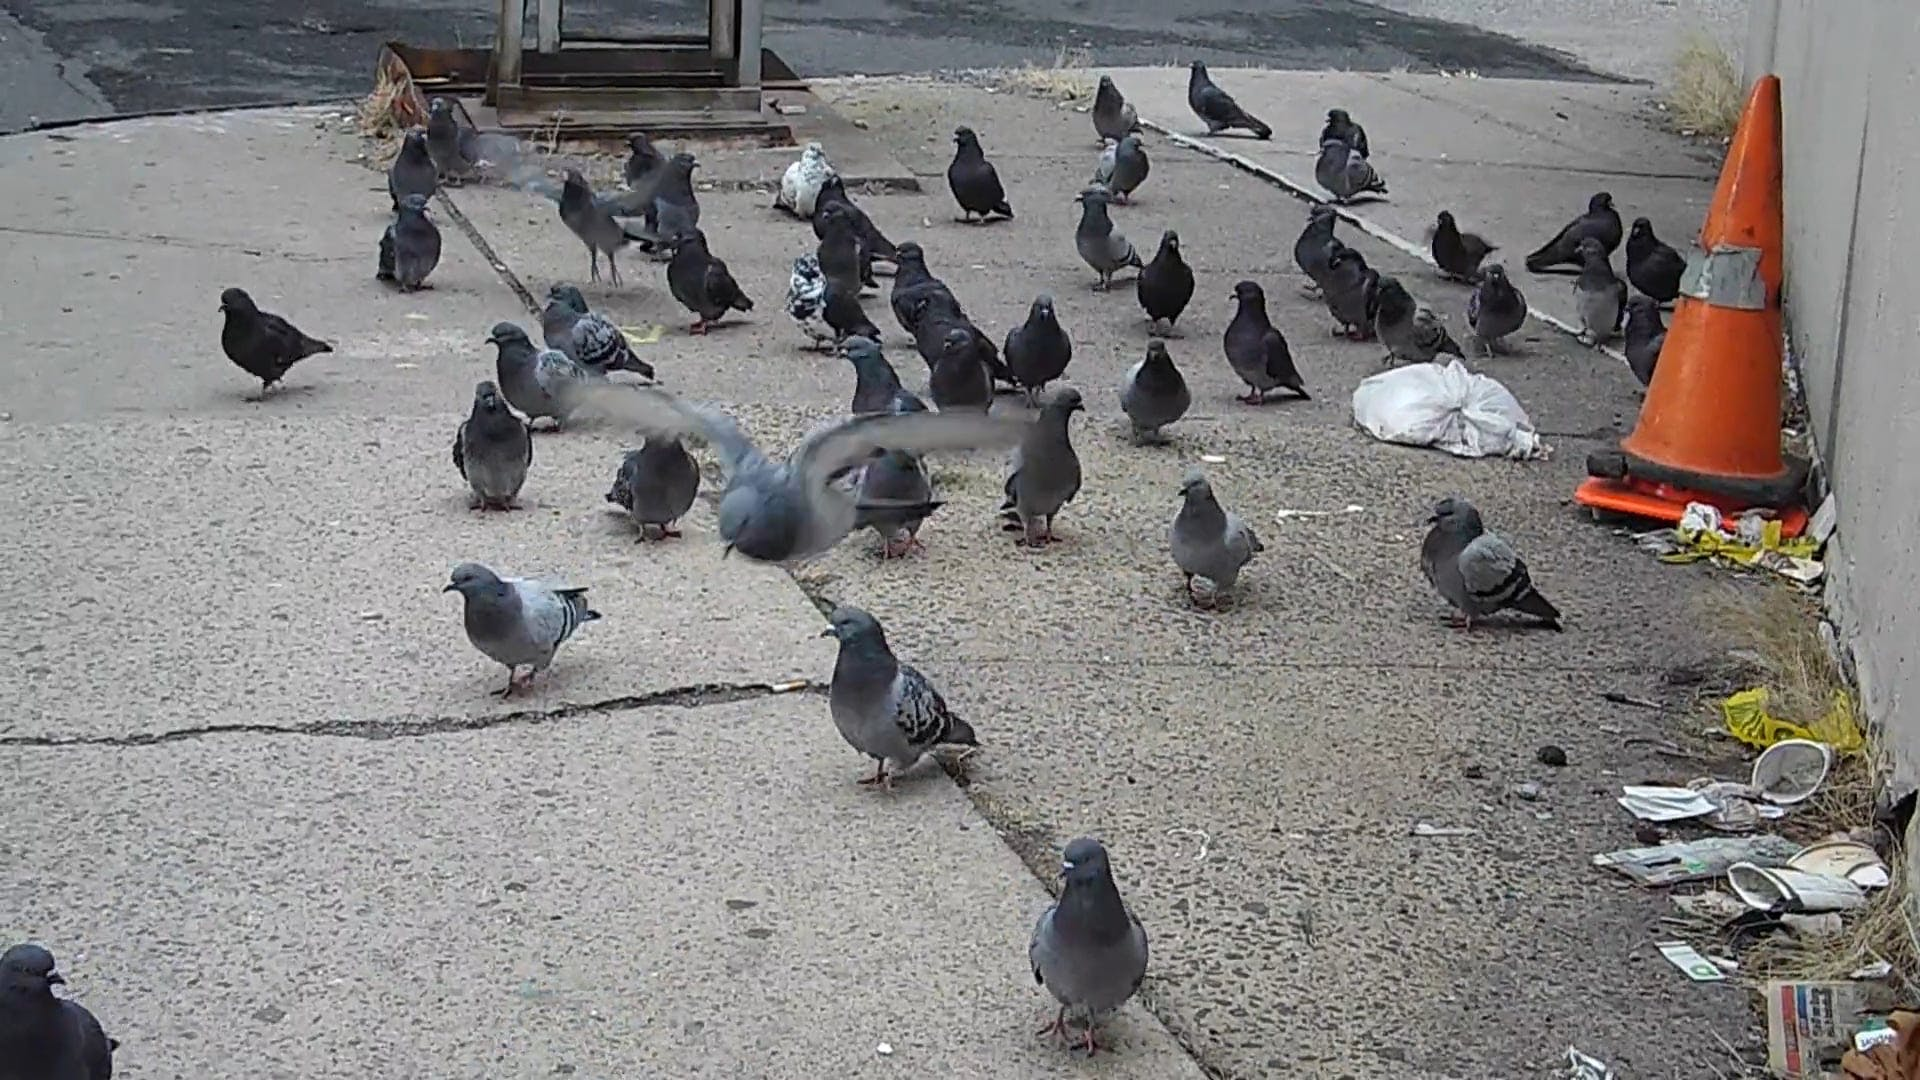 Flock Of Pigeons On Sidewalk